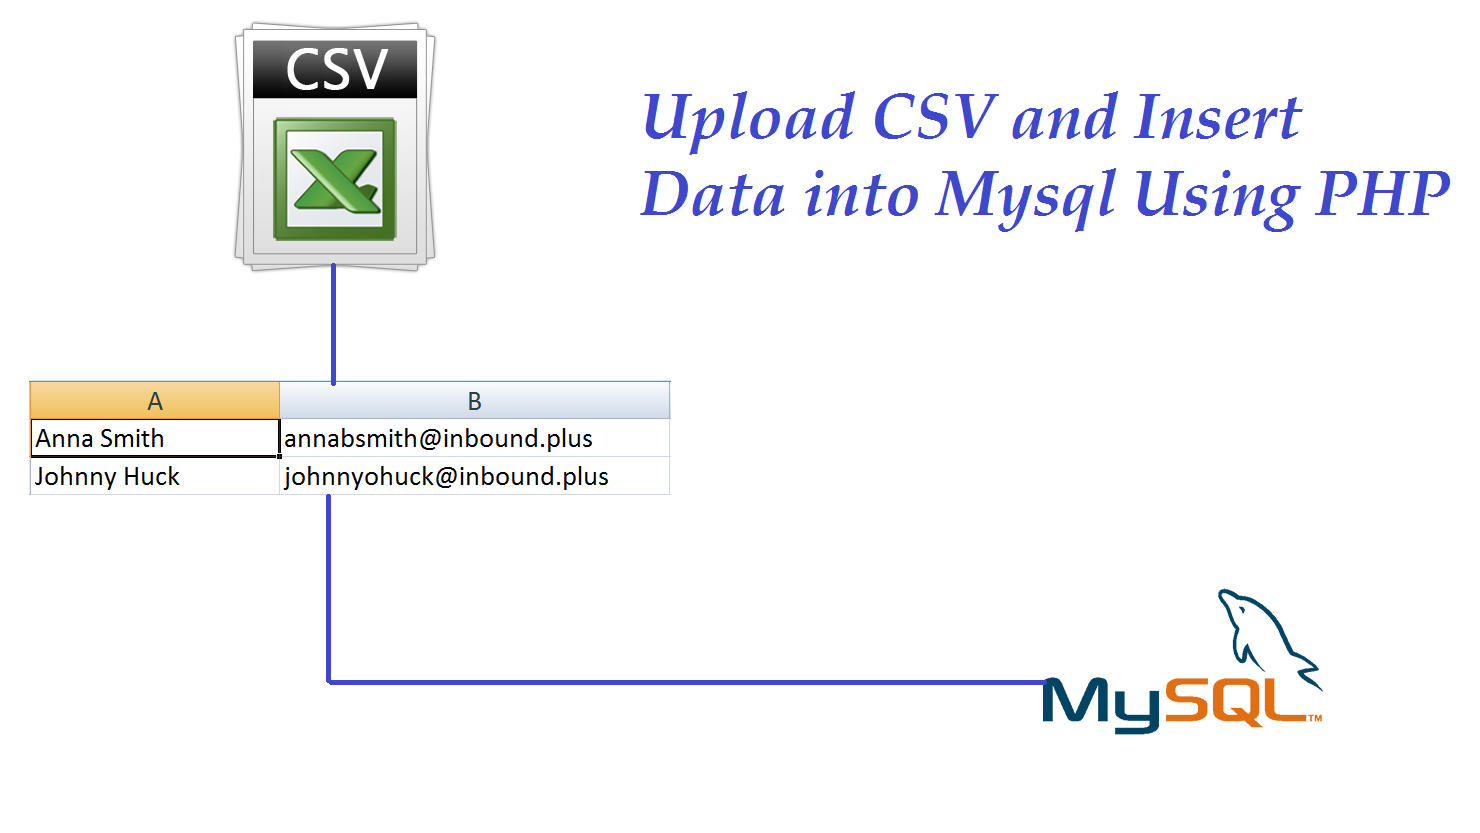 Upload CSV and Insert Data into Mysql Using PHP   Webslesson